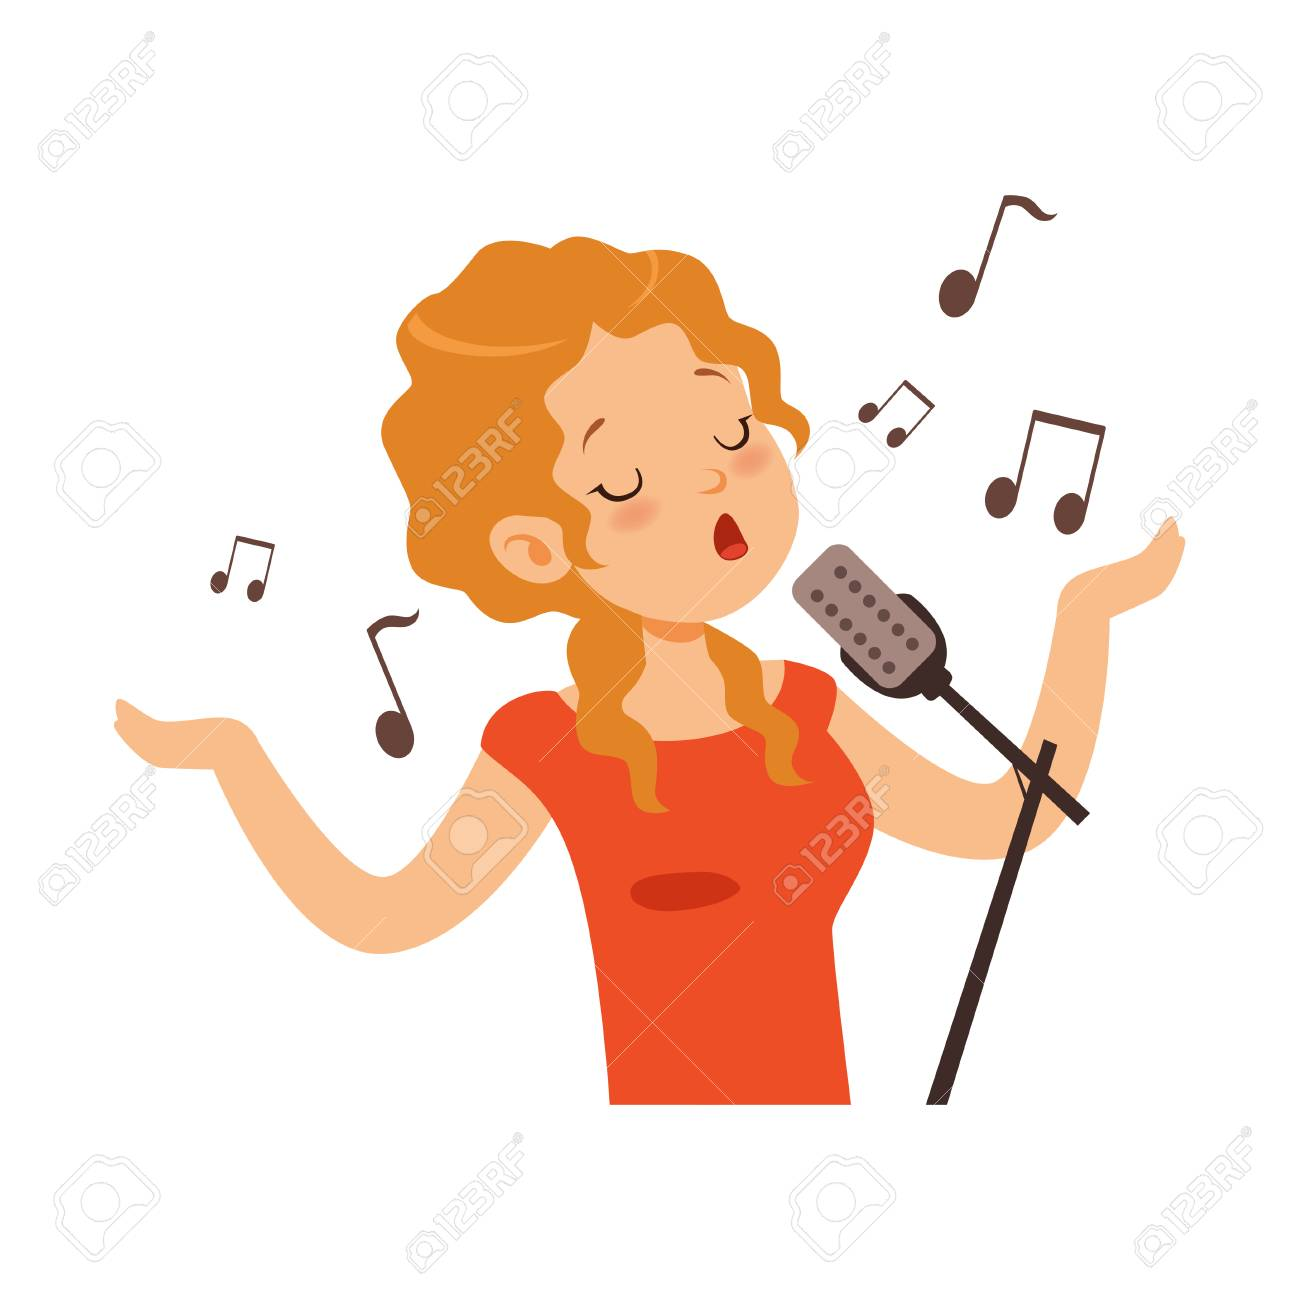 Girl singing with microphone, singer character cartoon vector Illustration on a white background - 94314987